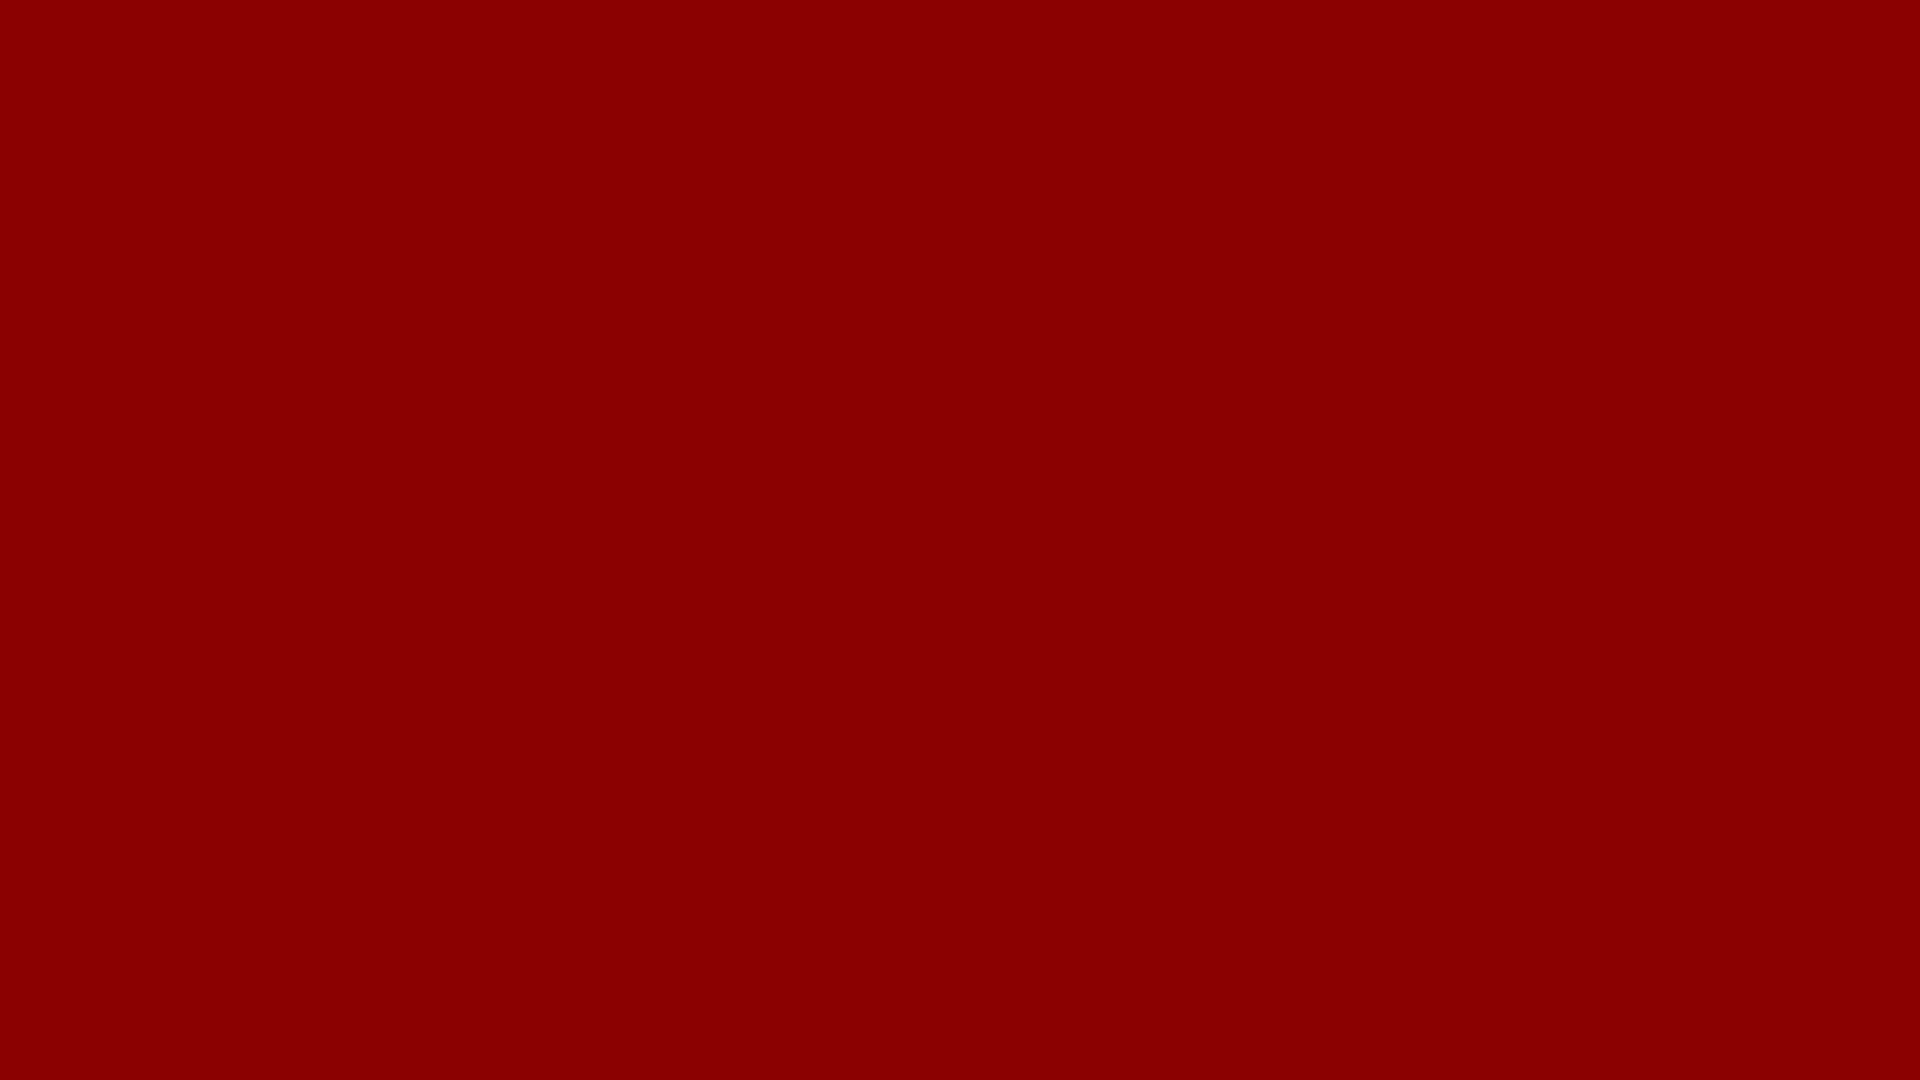 1920x1080 Dark Red Solid Color Background